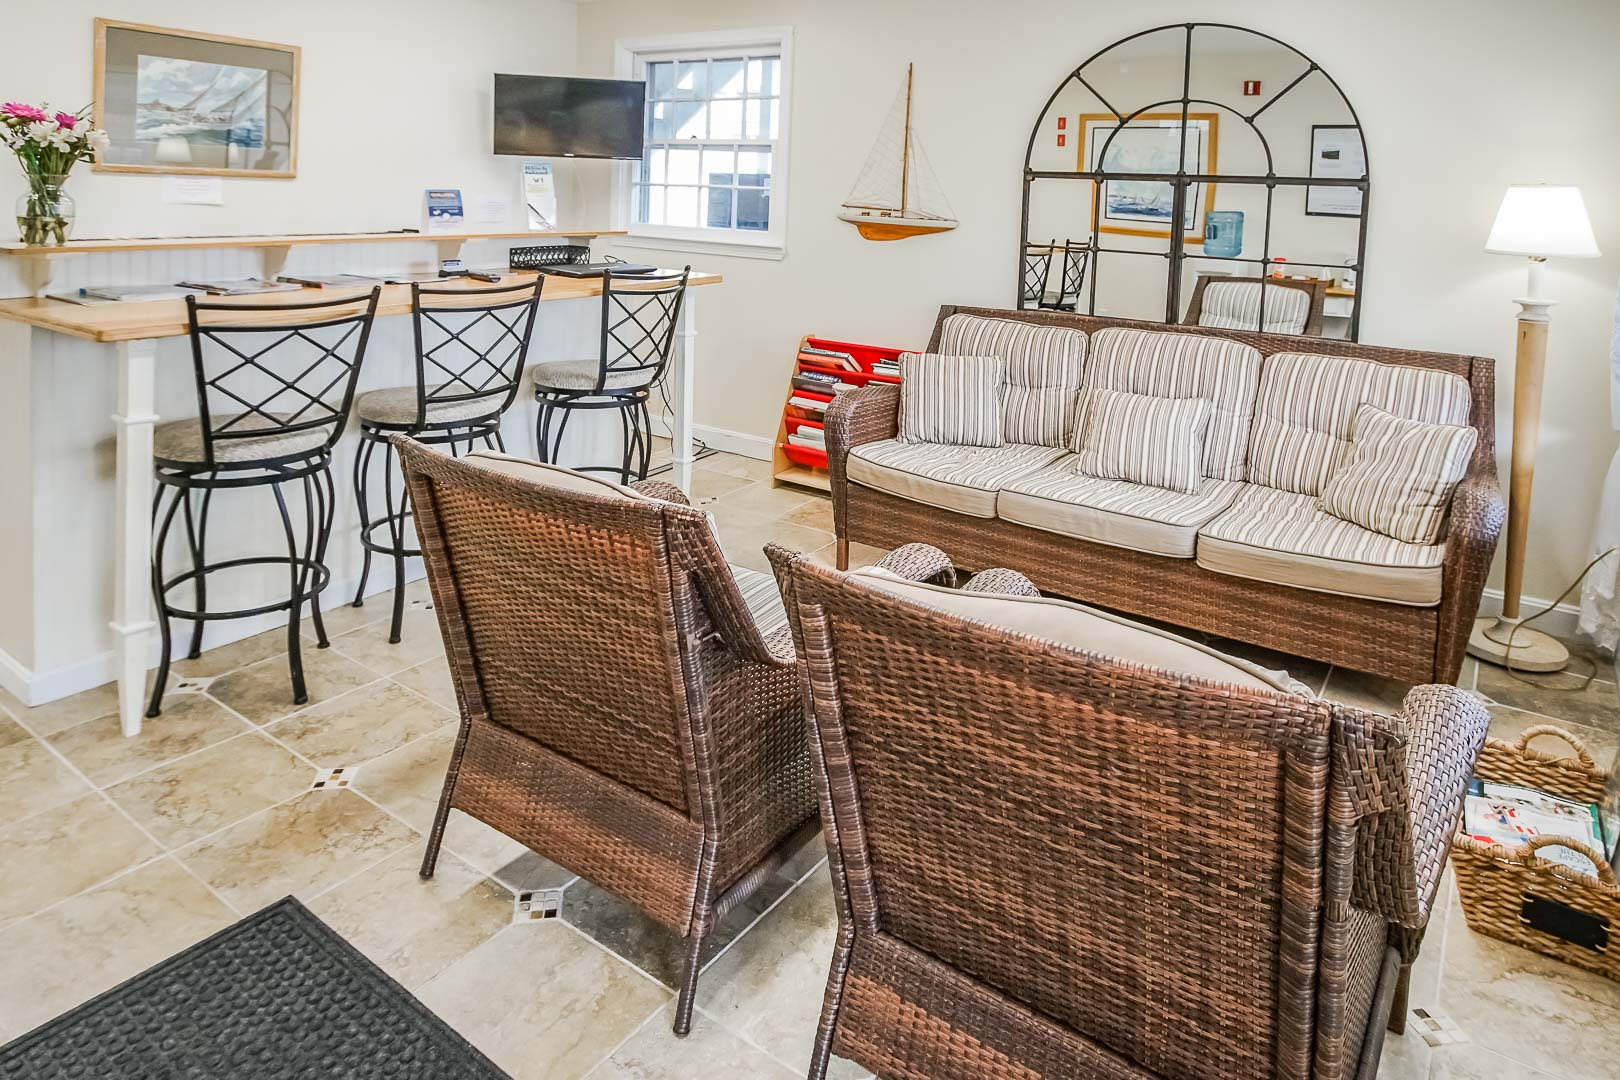 A welcoming concierge and lounging area at VRI's Island Manor Resort in Rhode Island.